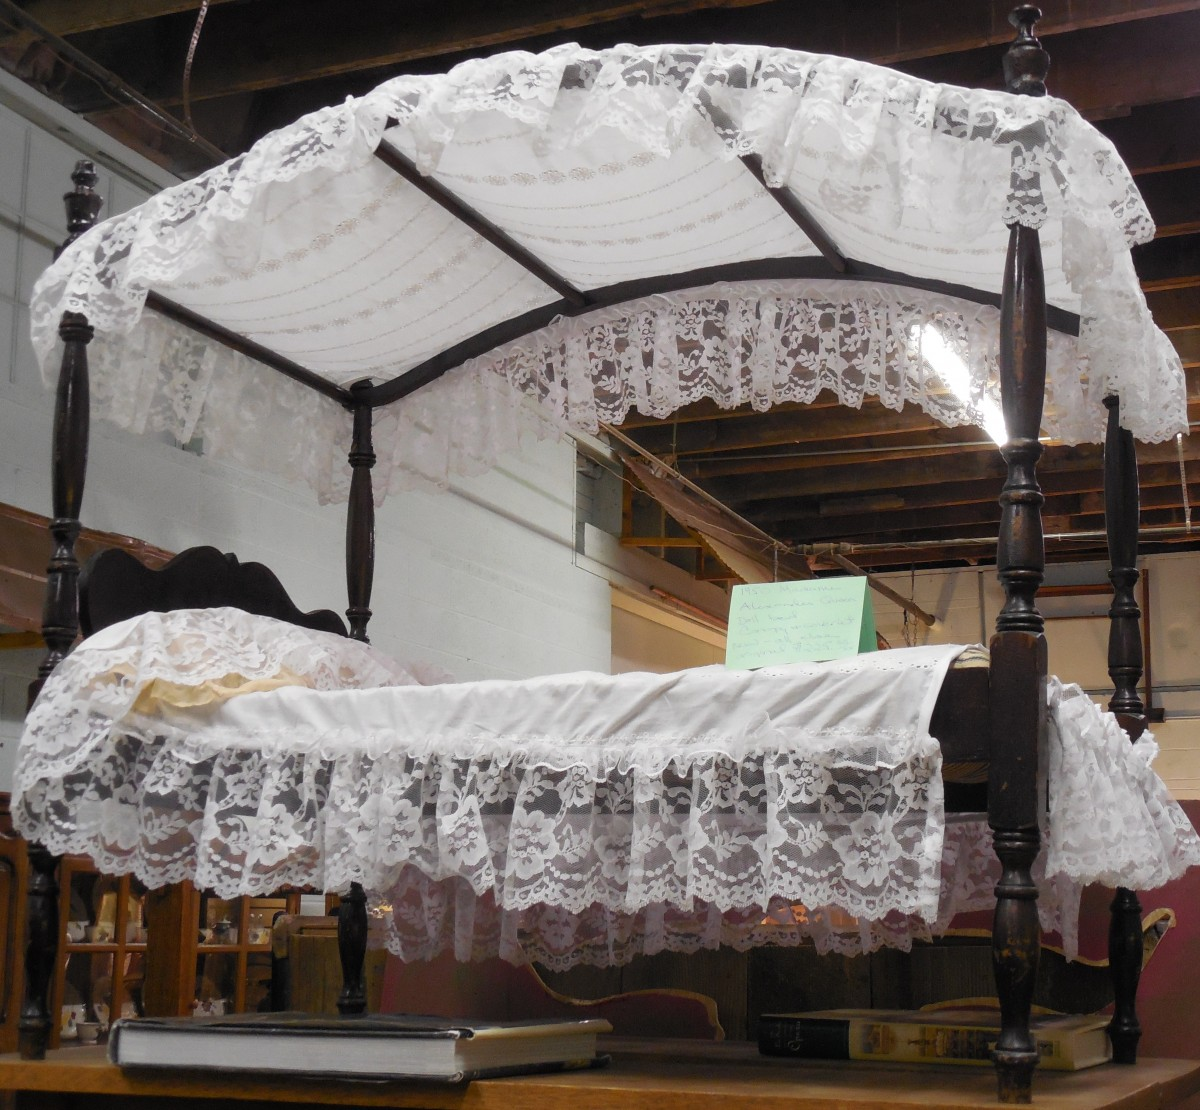 wood bed with hang  drape fabric above.